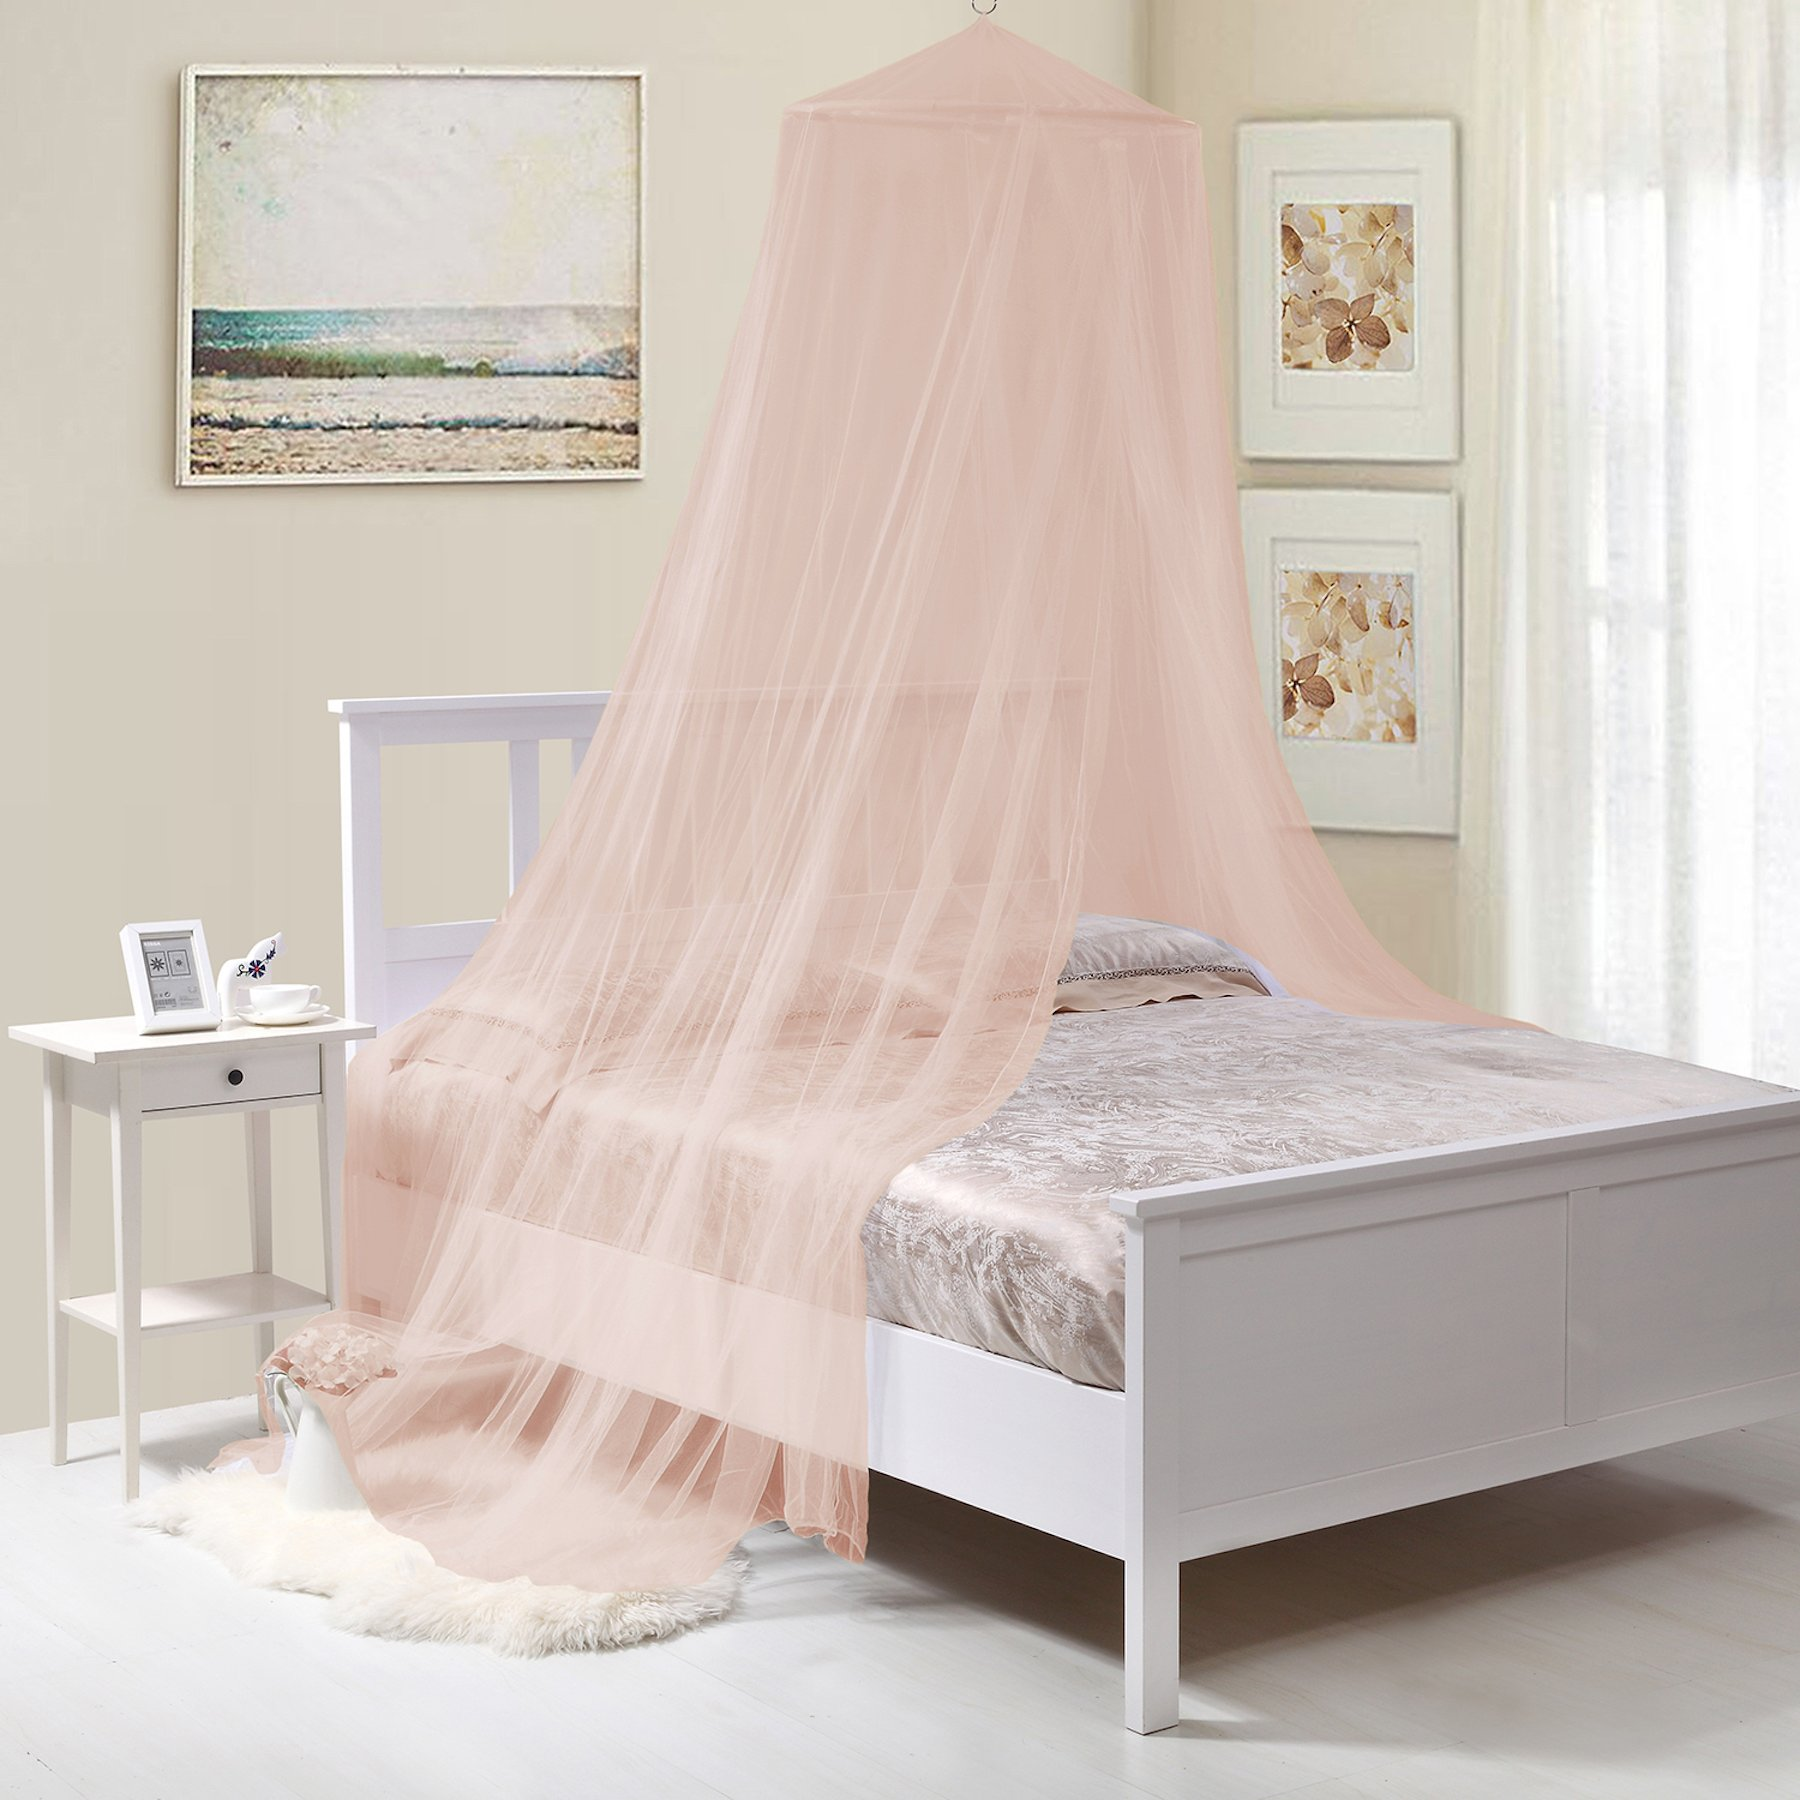 Fantasy Kids Kids Collapsible Wire Hoop Bed Canopy, Pink, One Size, by Fantasy Kids